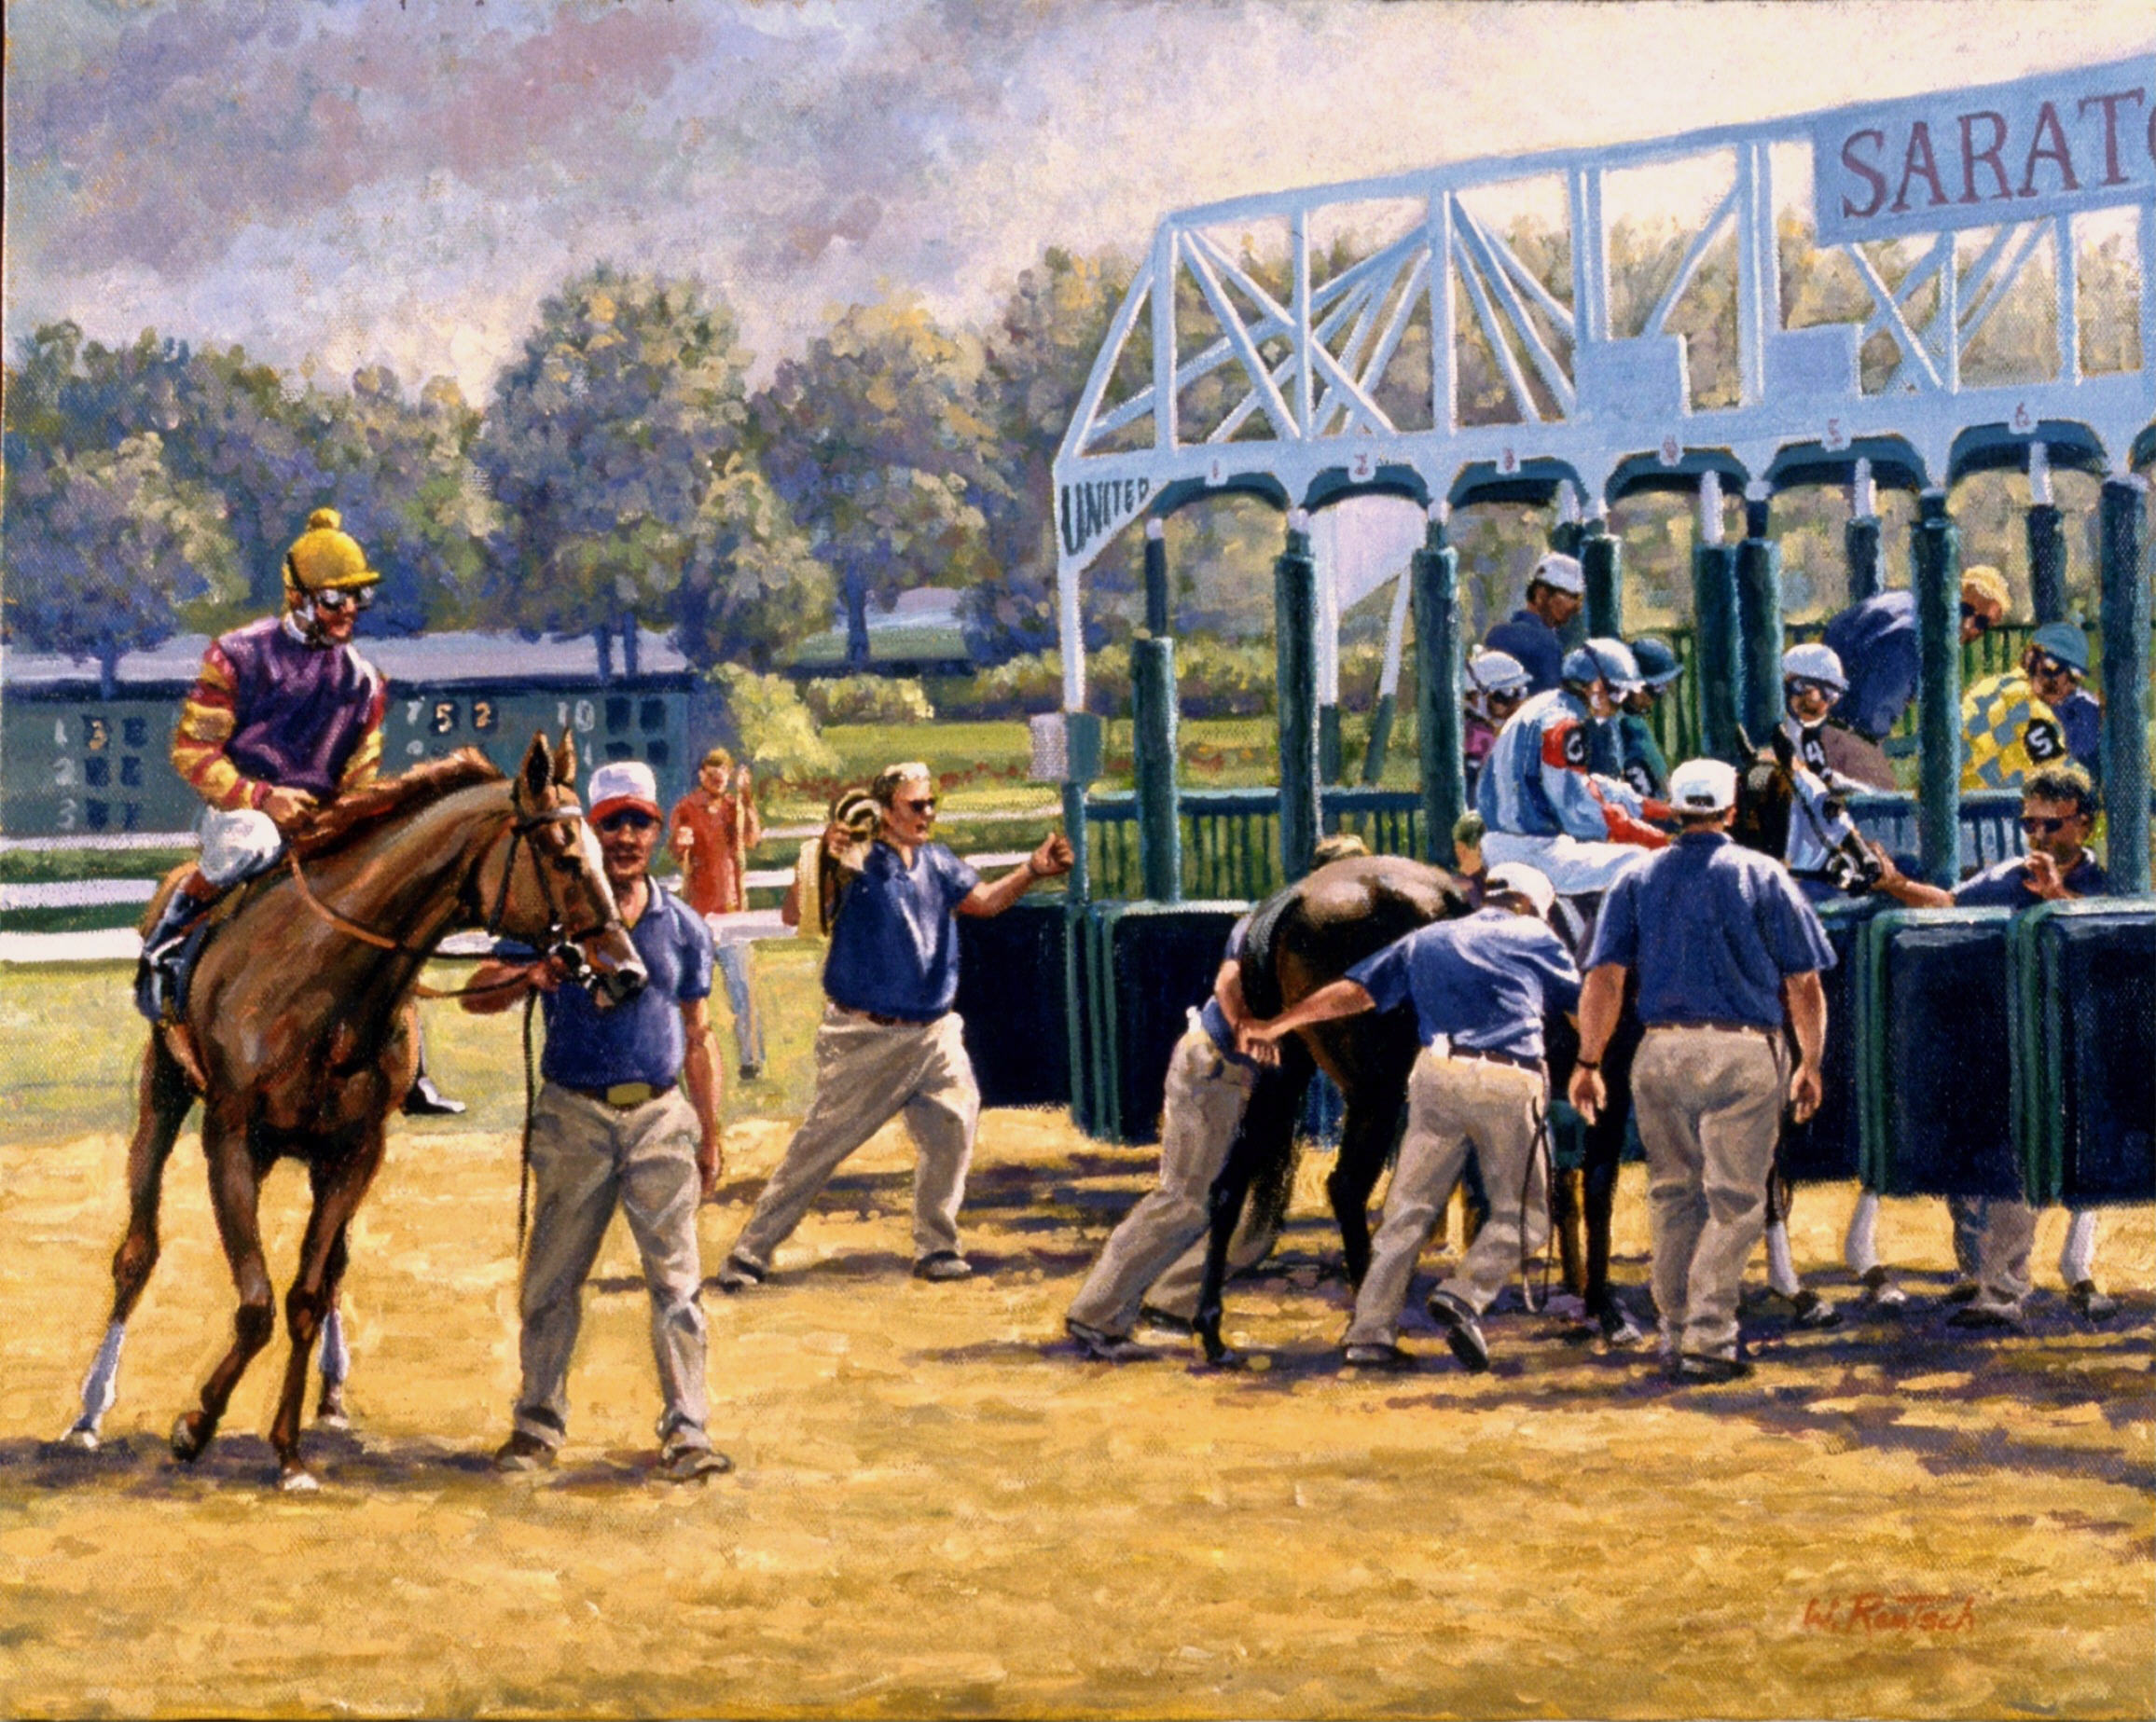 Starting Gate, oil on canvas, 16 x 20 inches, $3000